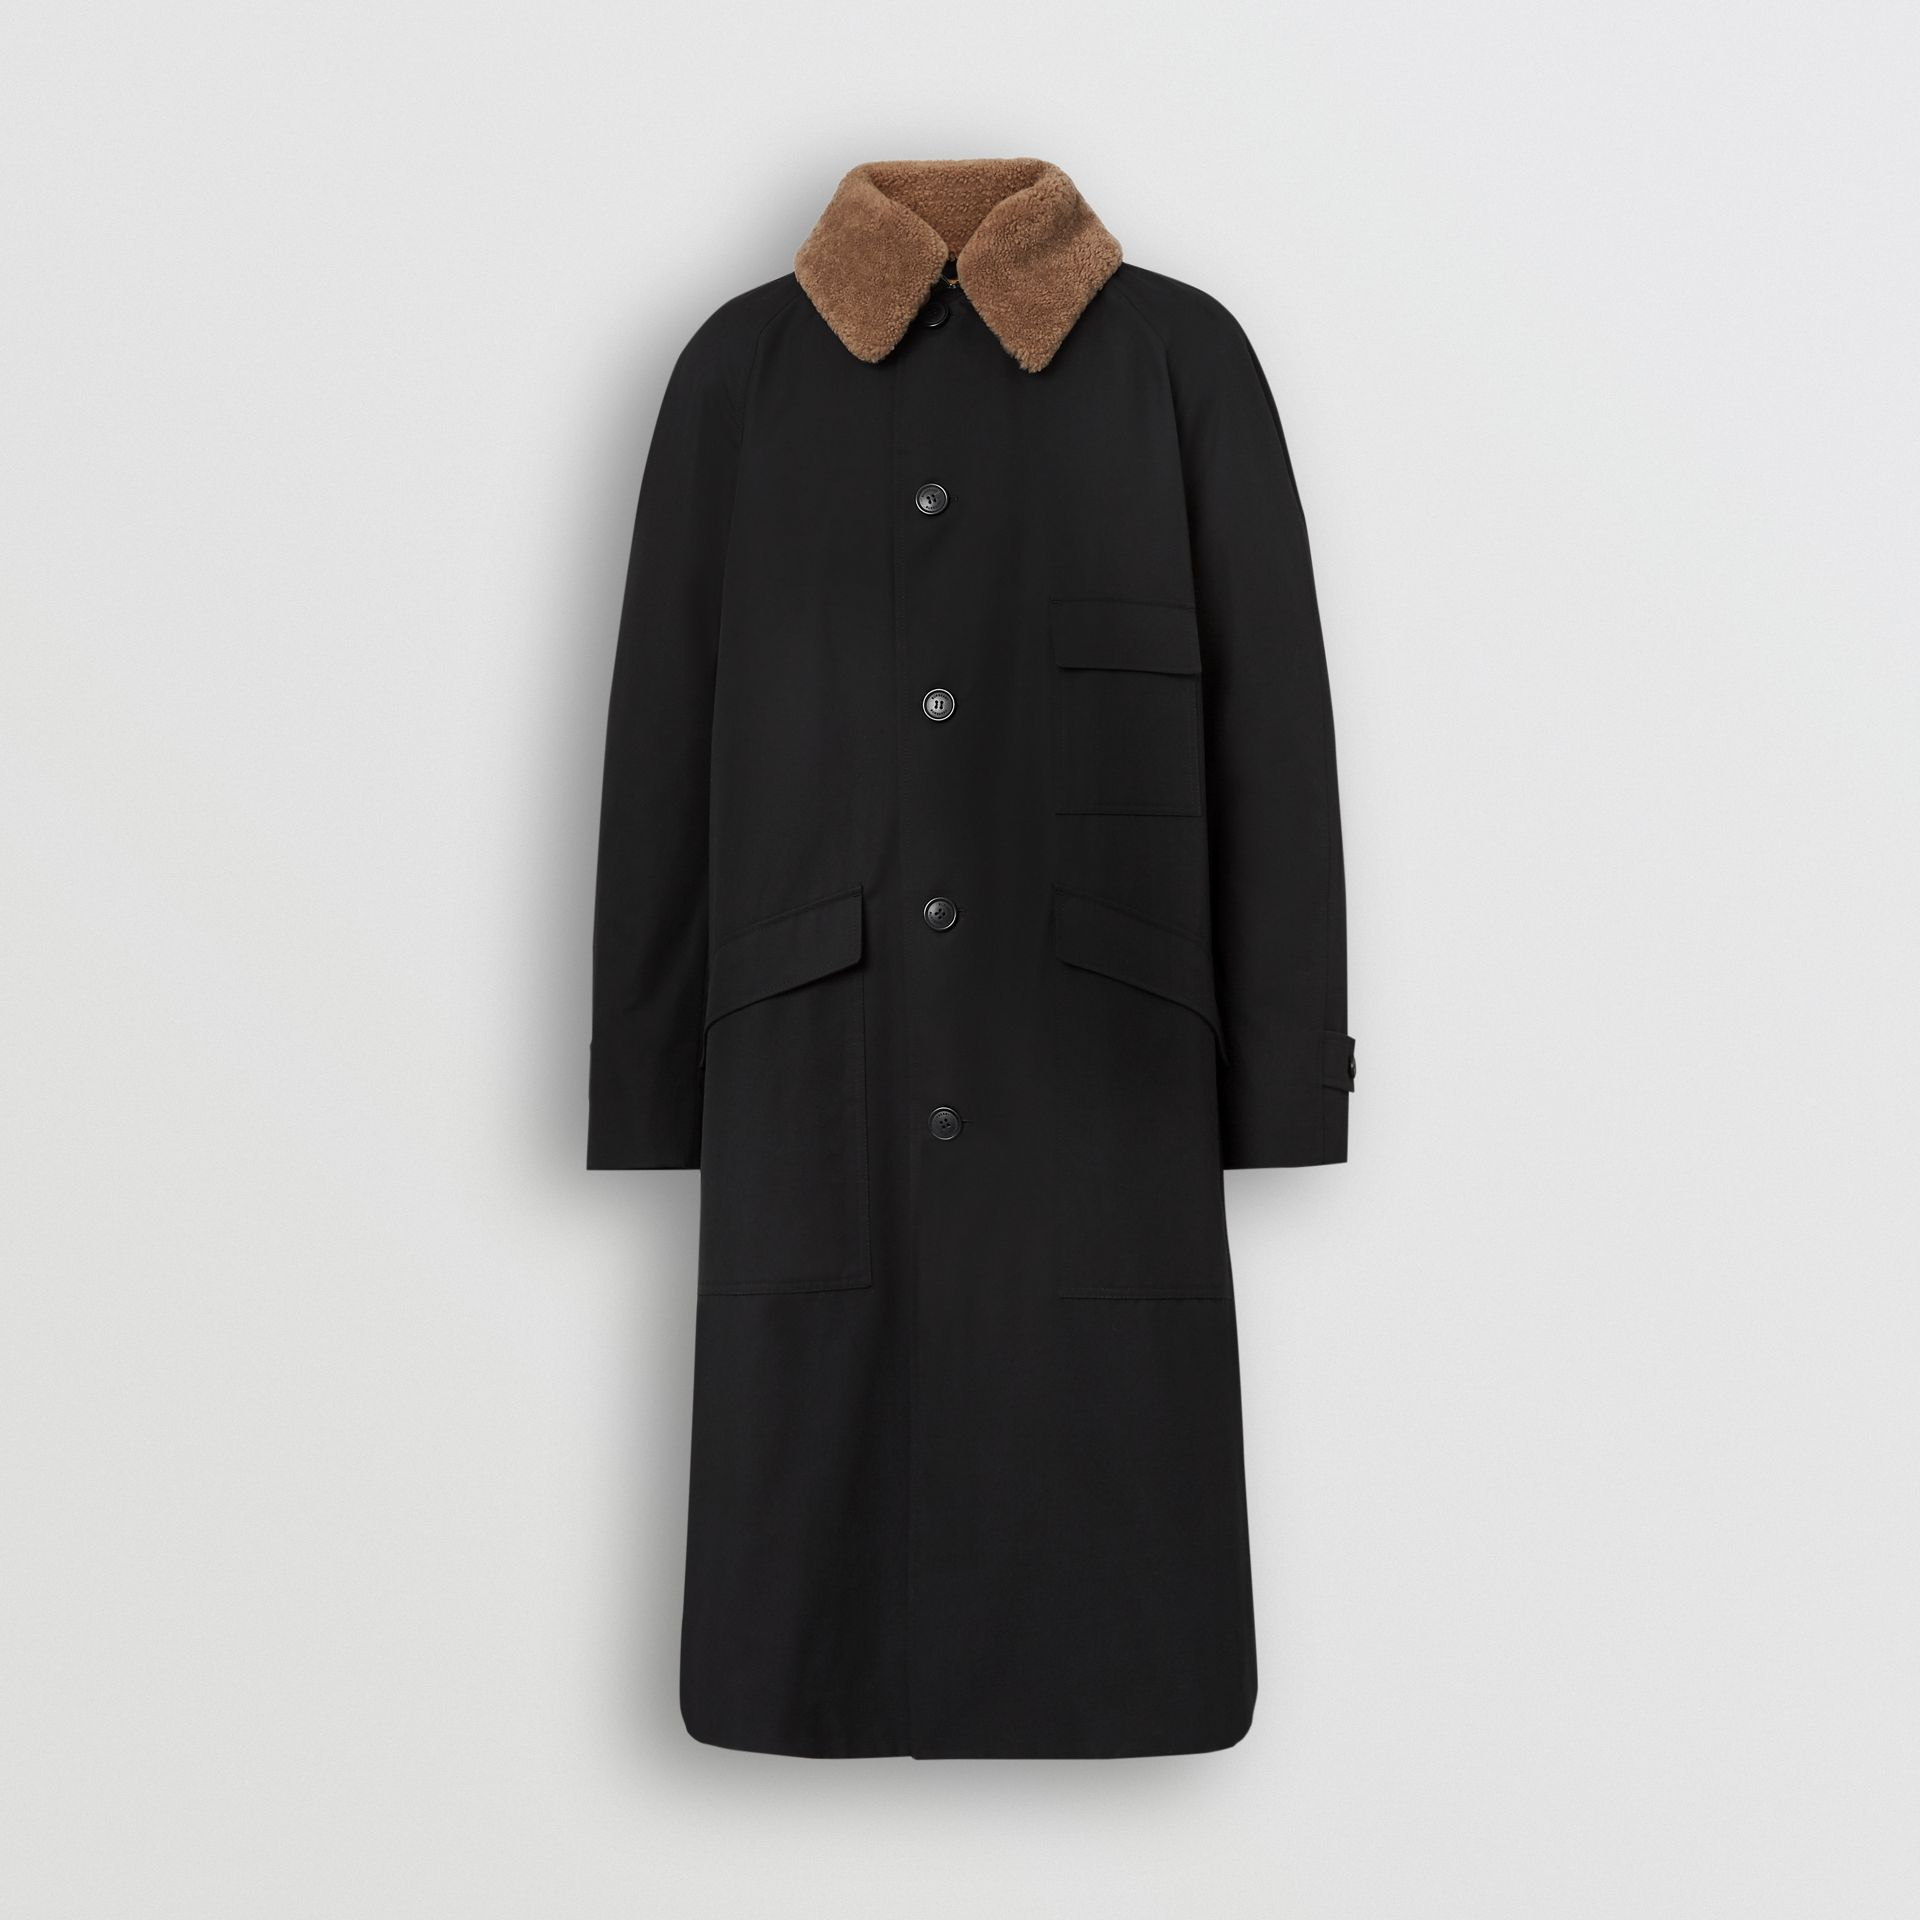 Contrast Shearling Collar Cotton Car Coat in Black - Men | Burberry Singapore - gallery image 7